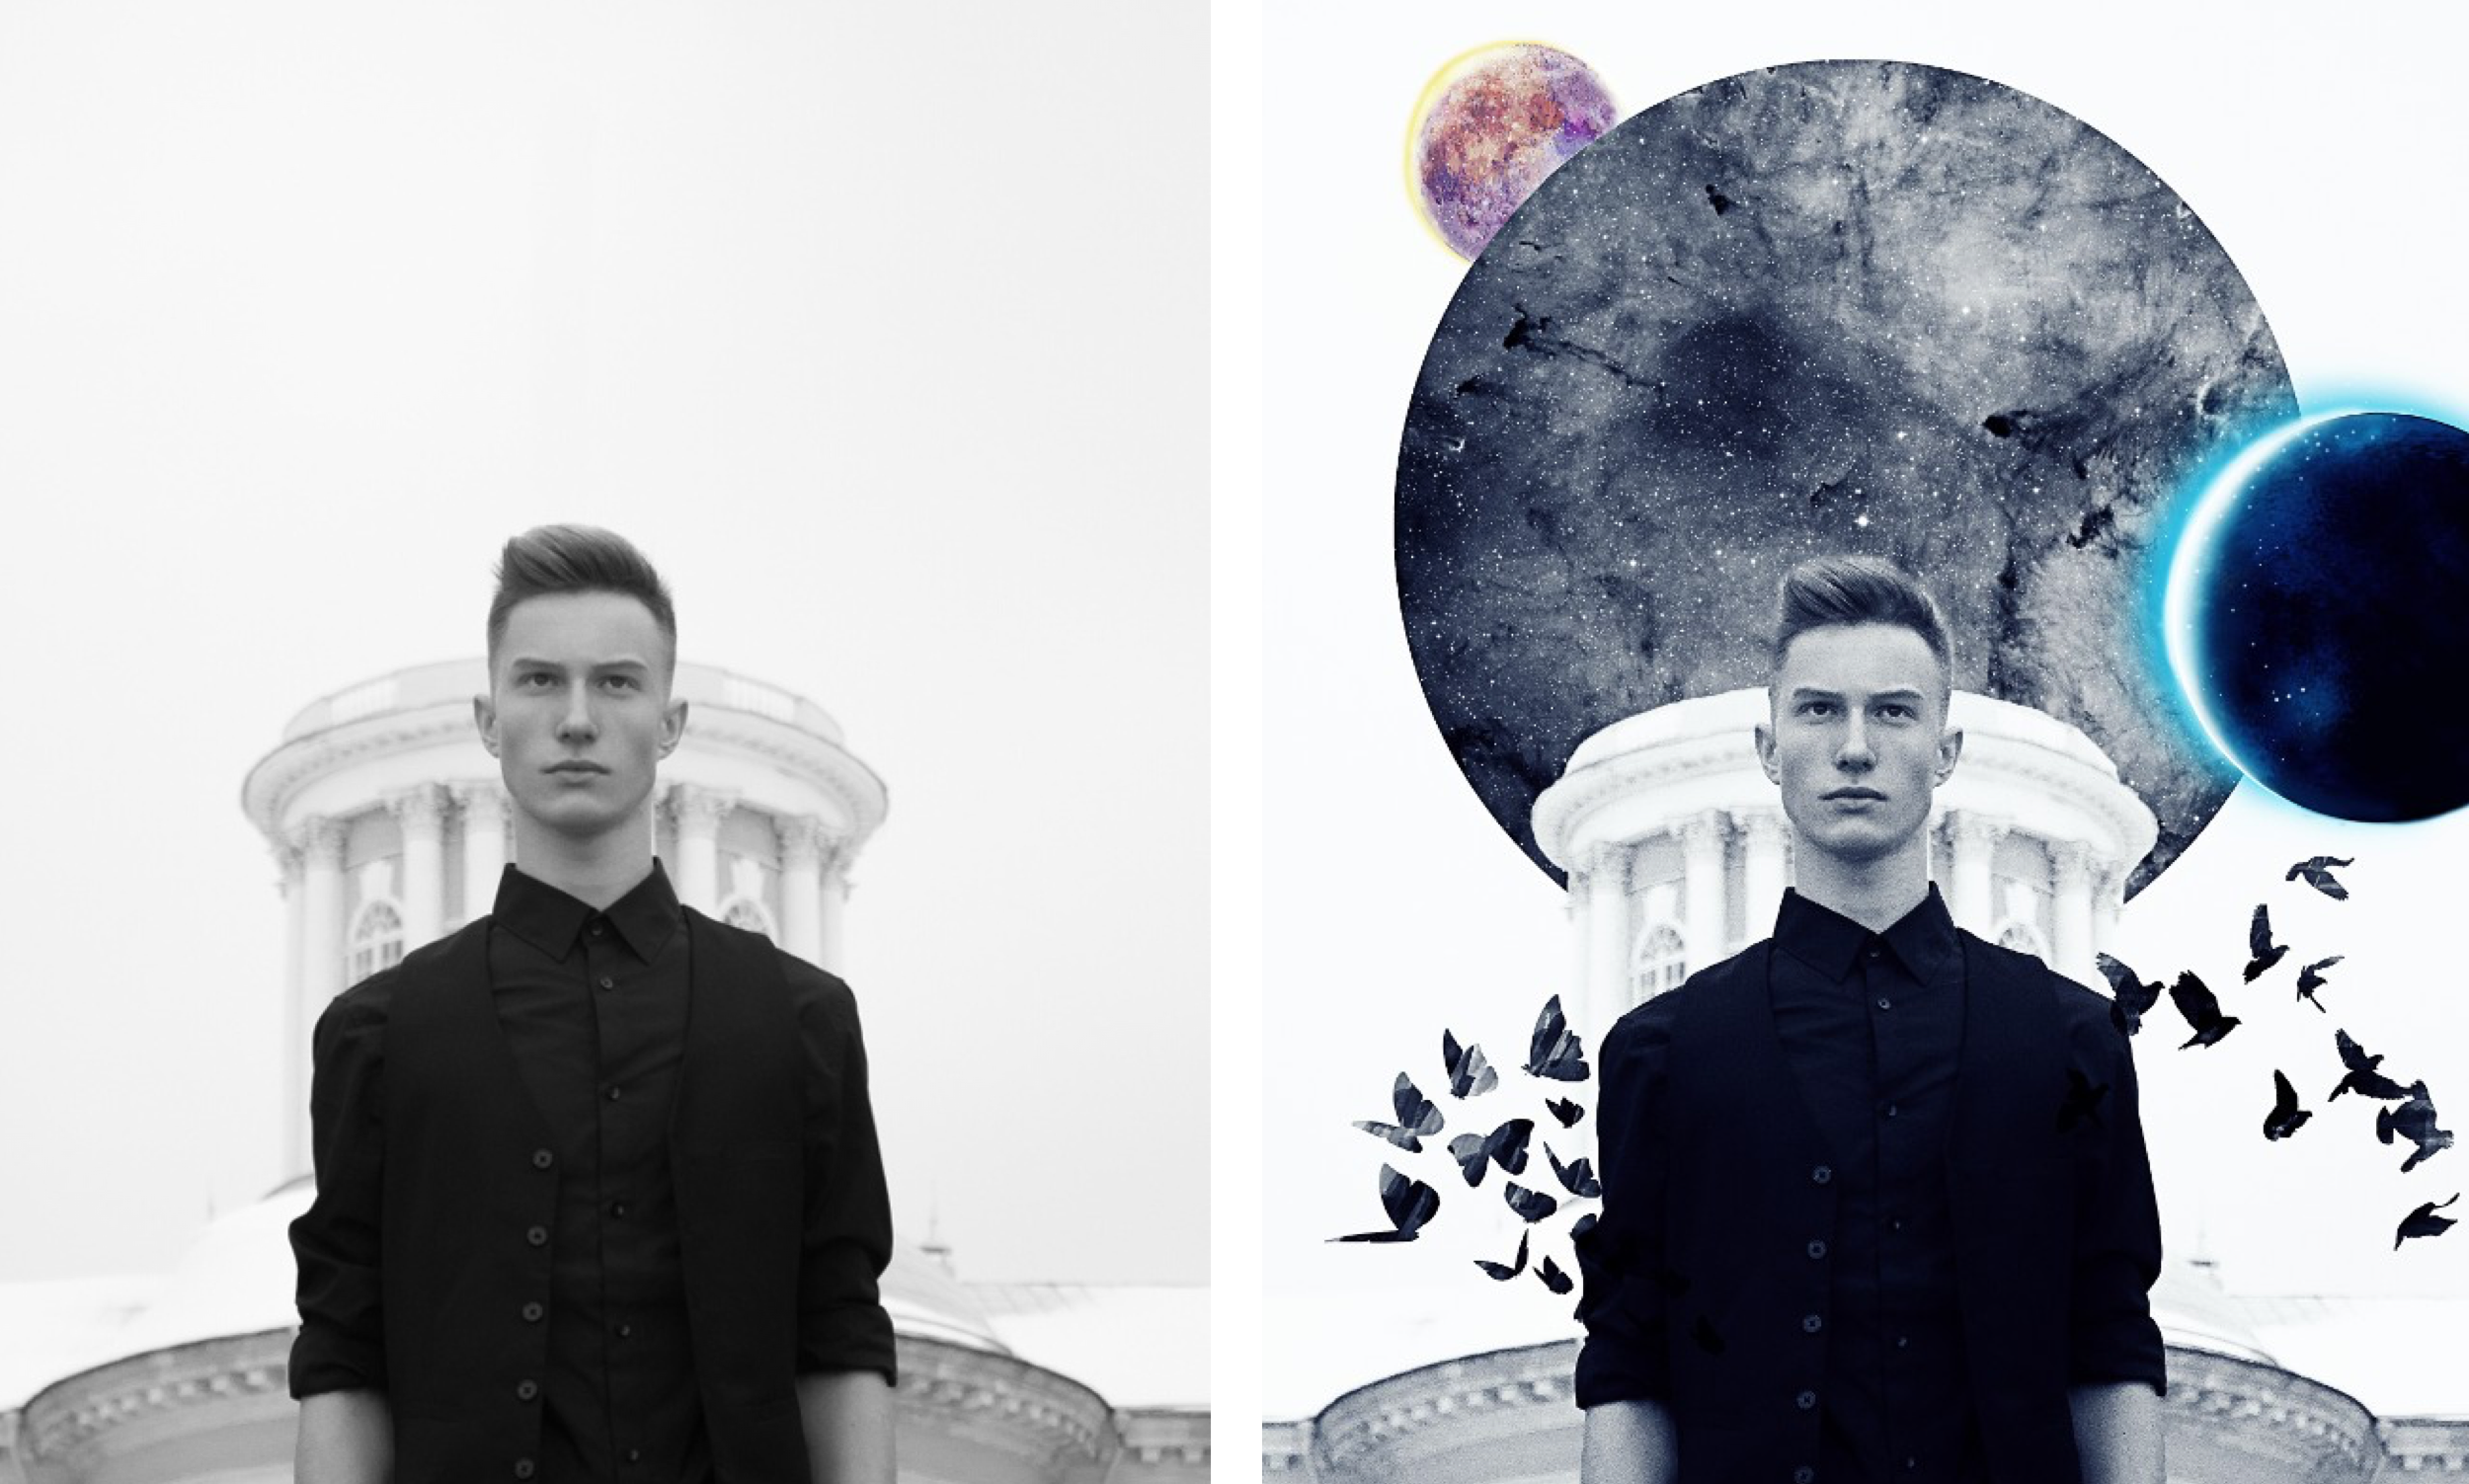 Moon Remix - Left by @antonday; Right by @abc.vis